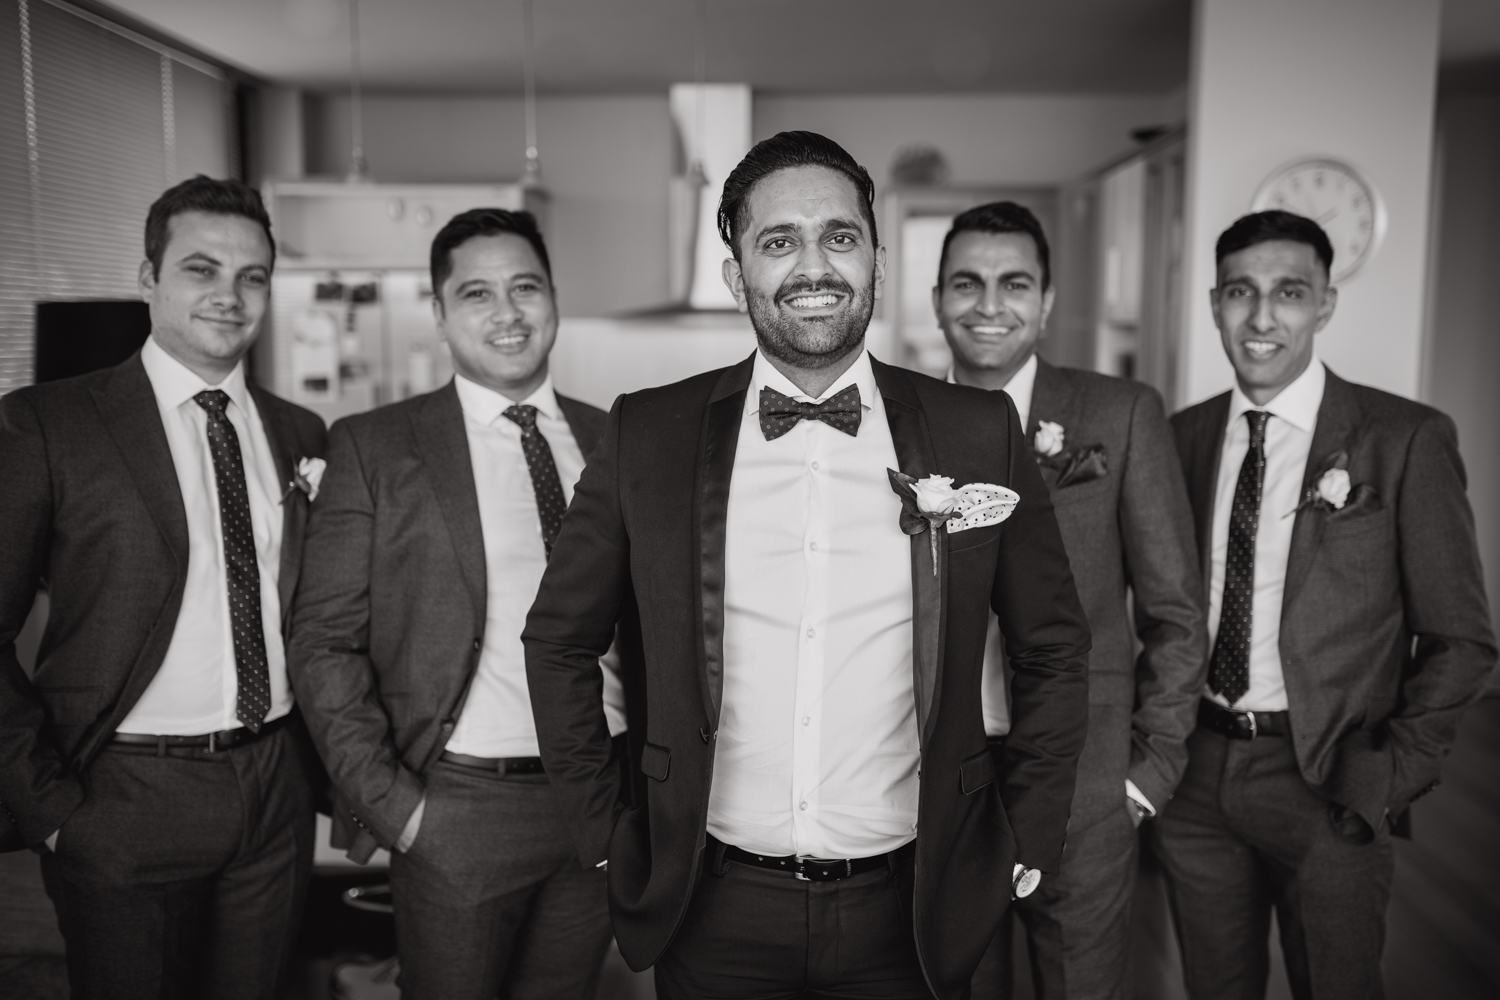 Groom and his groom's men. Groom getting ready for his wedding. This image was taken by Mala Photography, an Auckland based wedding photographer. The wedding was at Markovina Vineyard Estate In Kumeu, Auckland